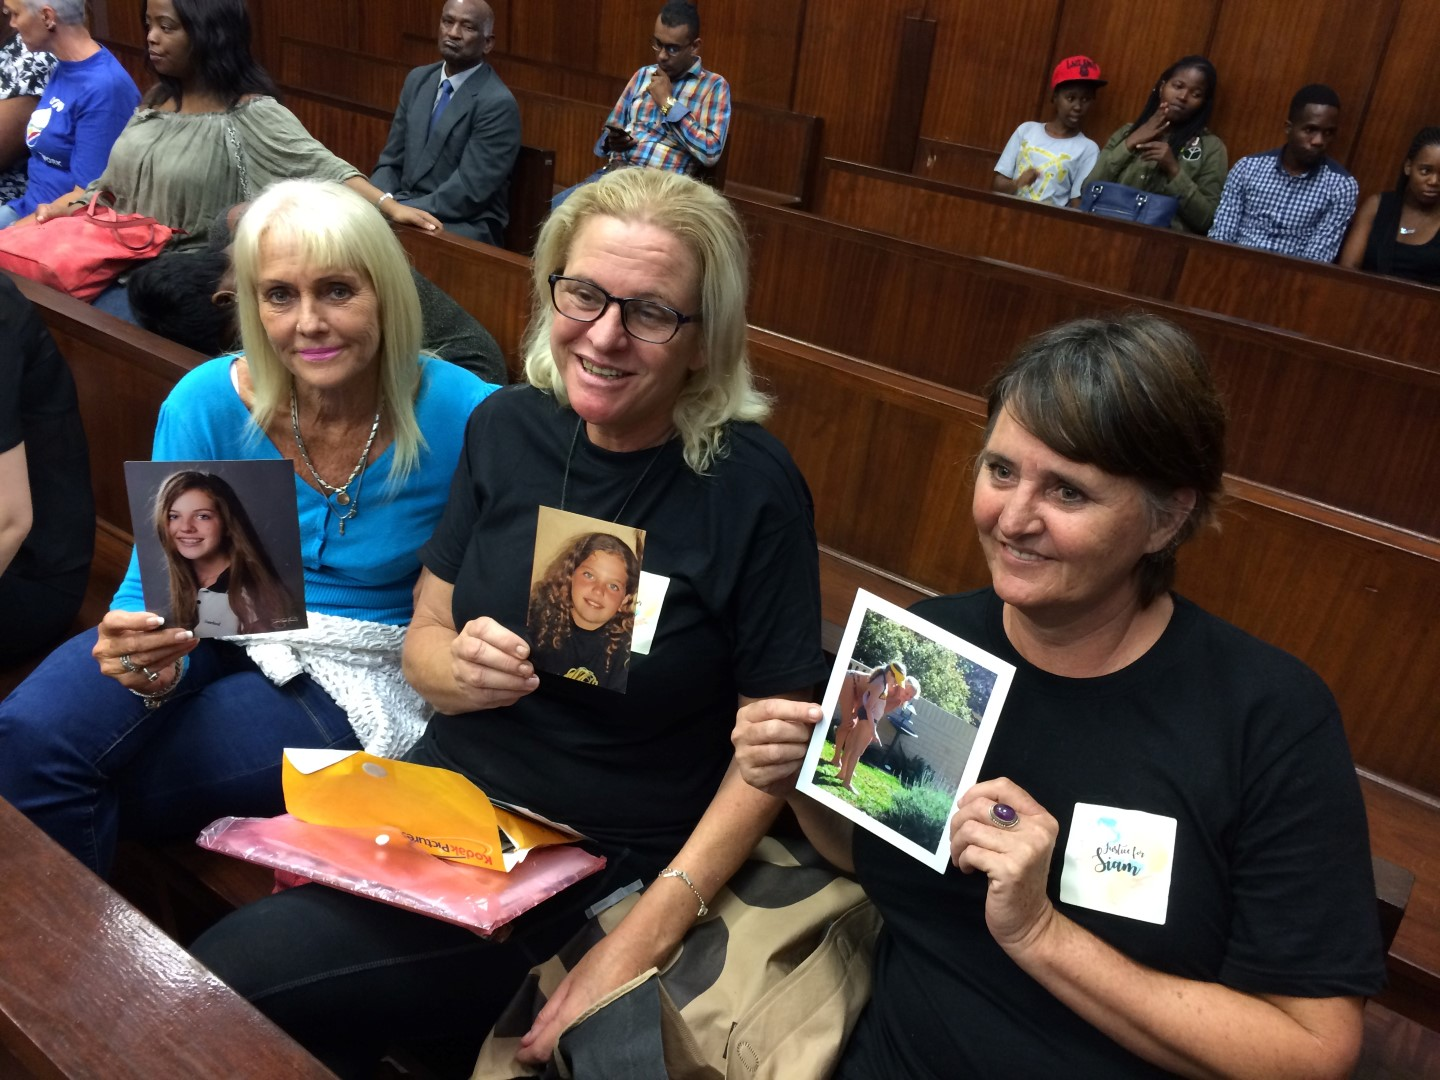 Siam Lee's mother, Carmen Nan Lee, and close friends show photos of Siam Lee.